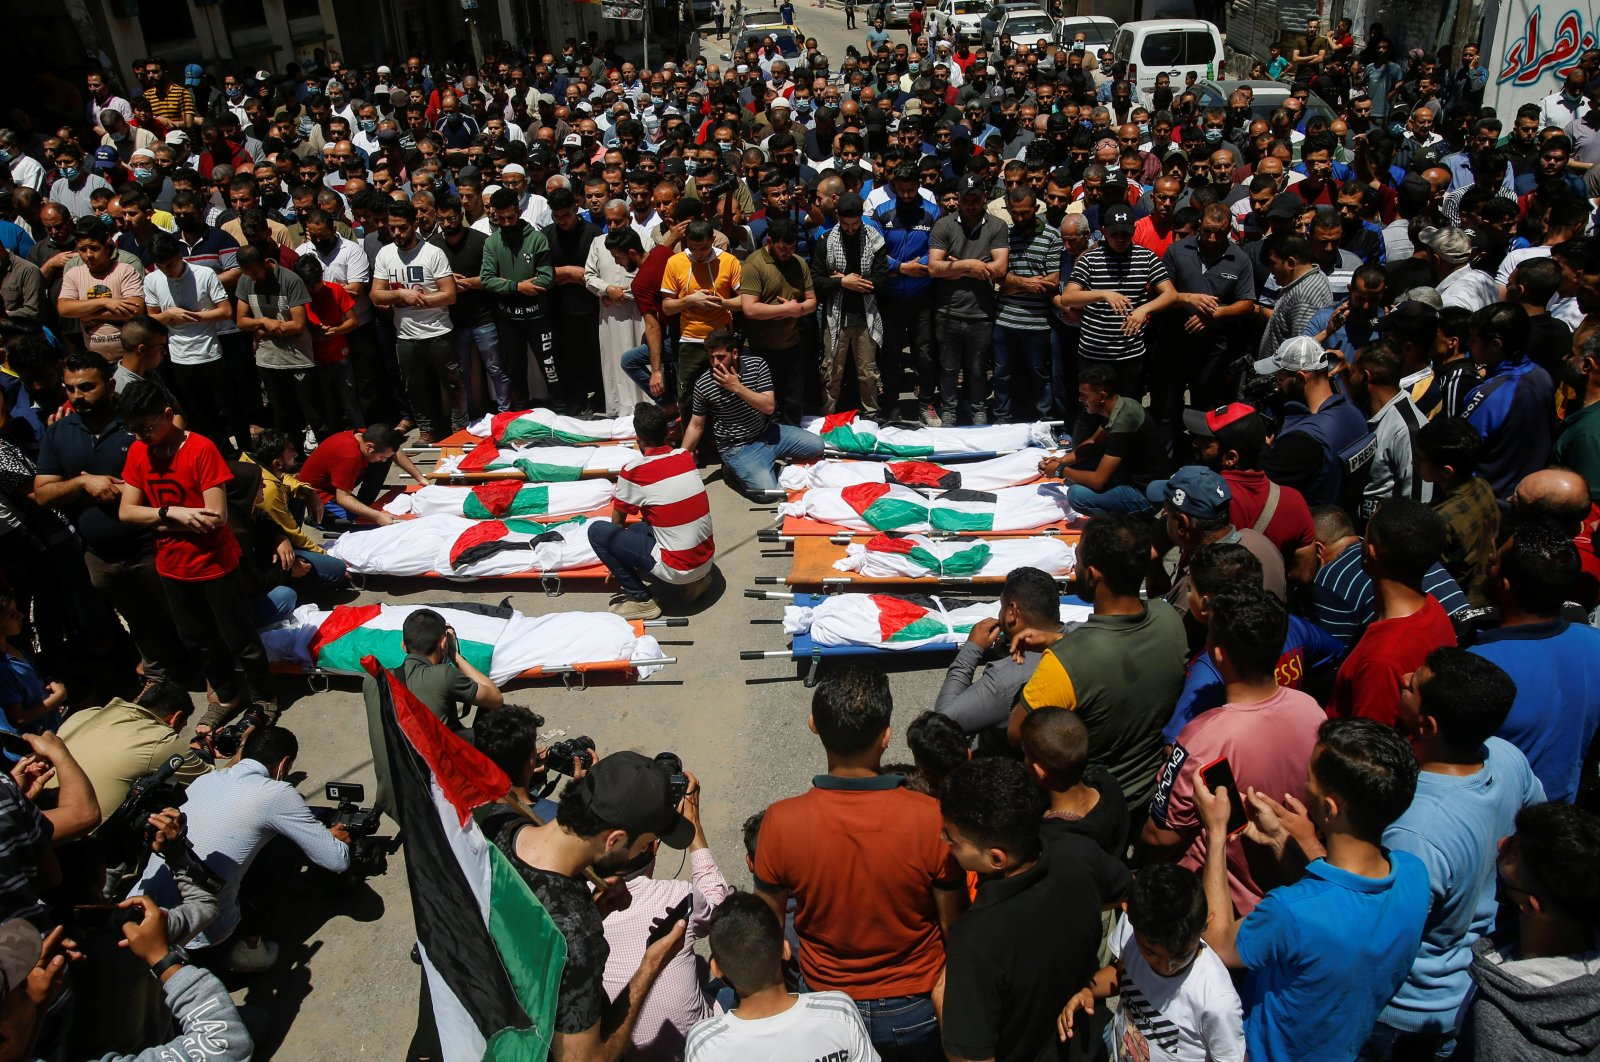 Mourners offer funeral prayers next to the bodies of Palestinians who were killed in an Israeli airstrike, in Gaza City, Palestine, May 15, 2021. (Reuters Photo)